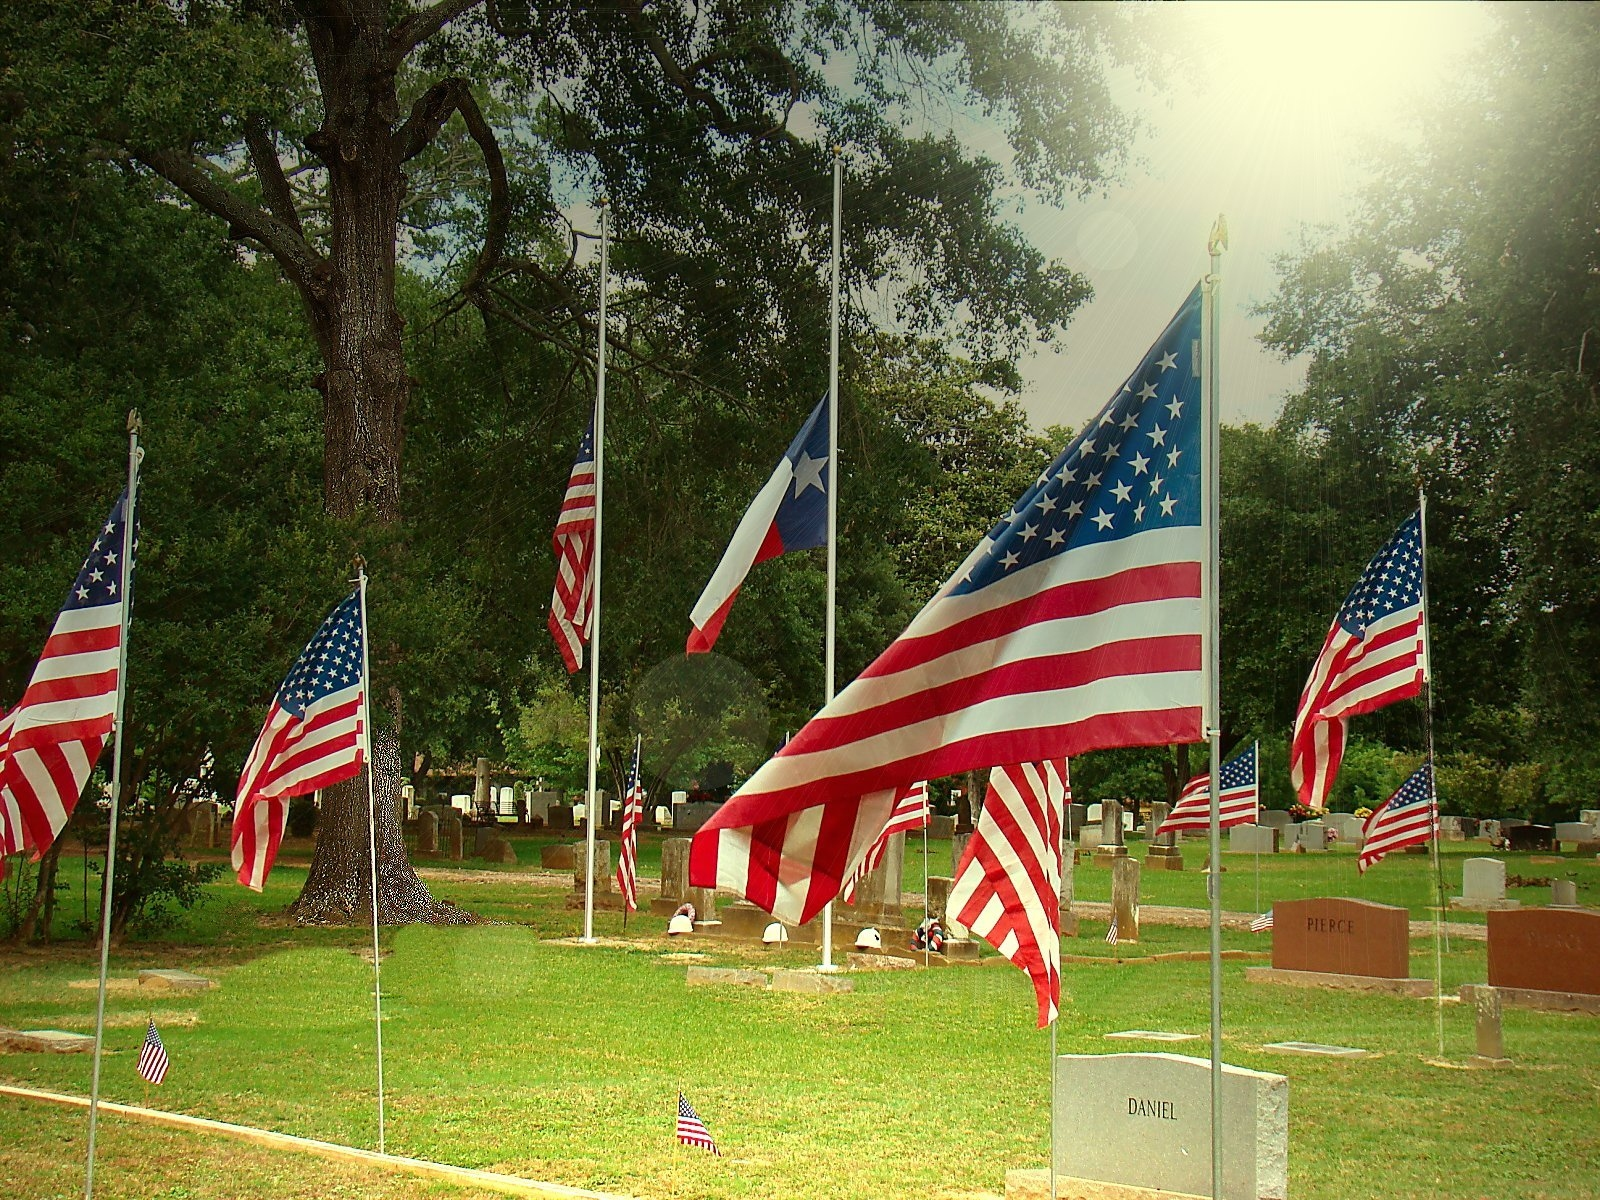 Memorial Day at Oak Grove Cemetery in Historic Nacogdoches